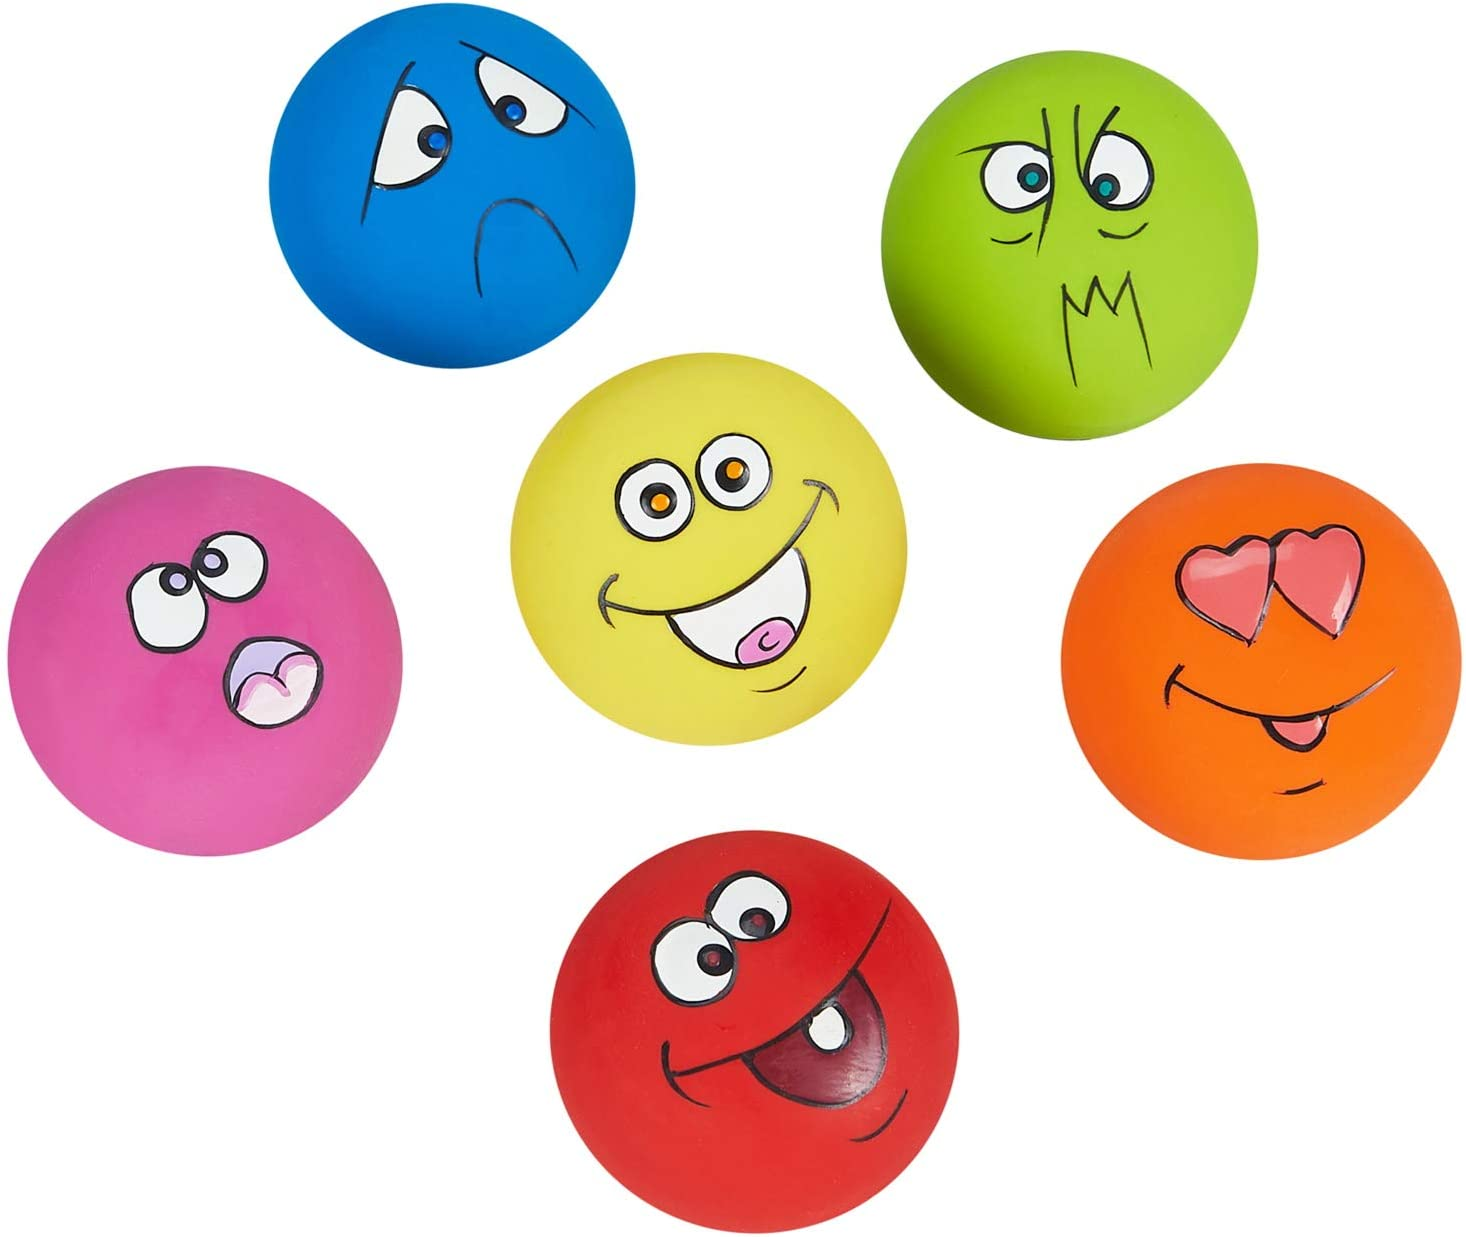 Brands Squeaky Balls with Funny Faces